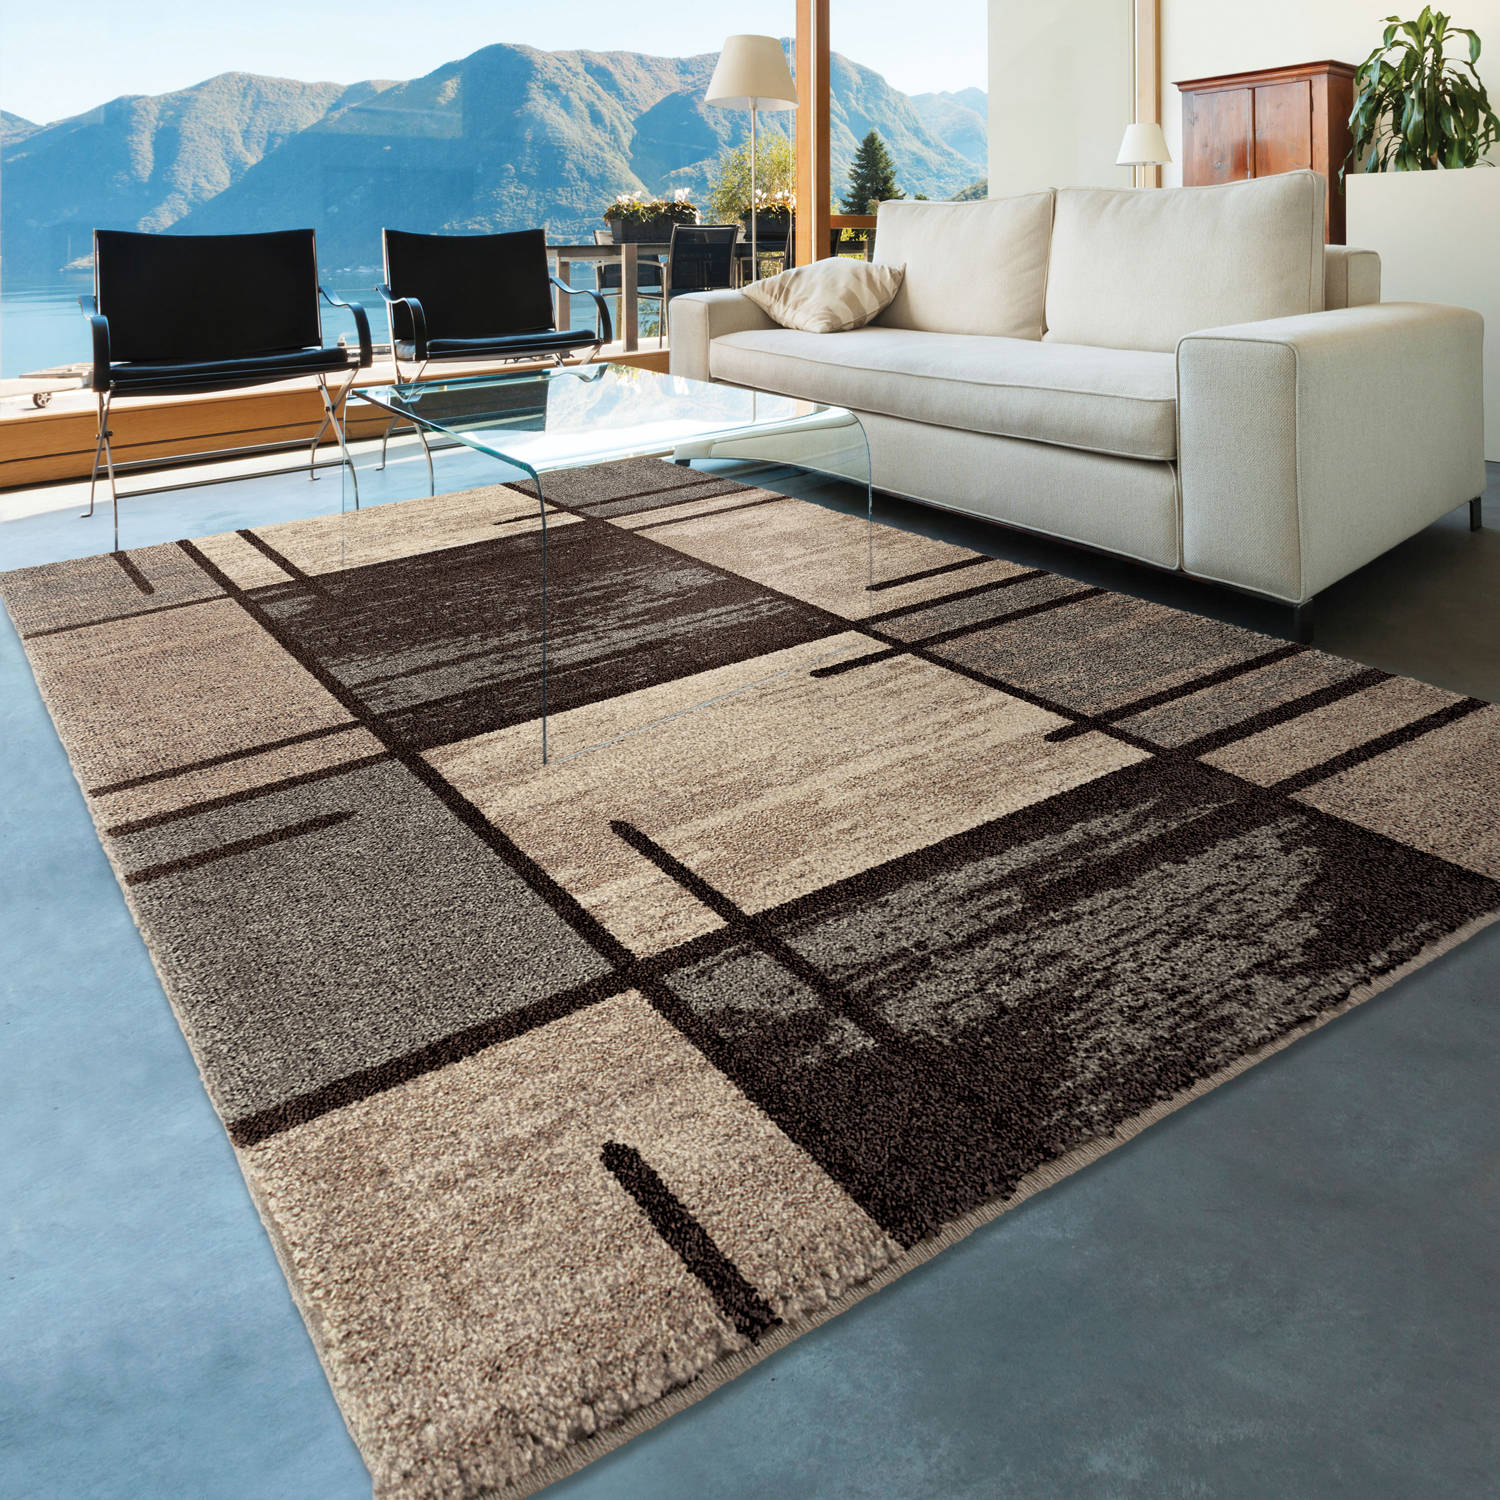 Decorate Your Living Room with Rugs